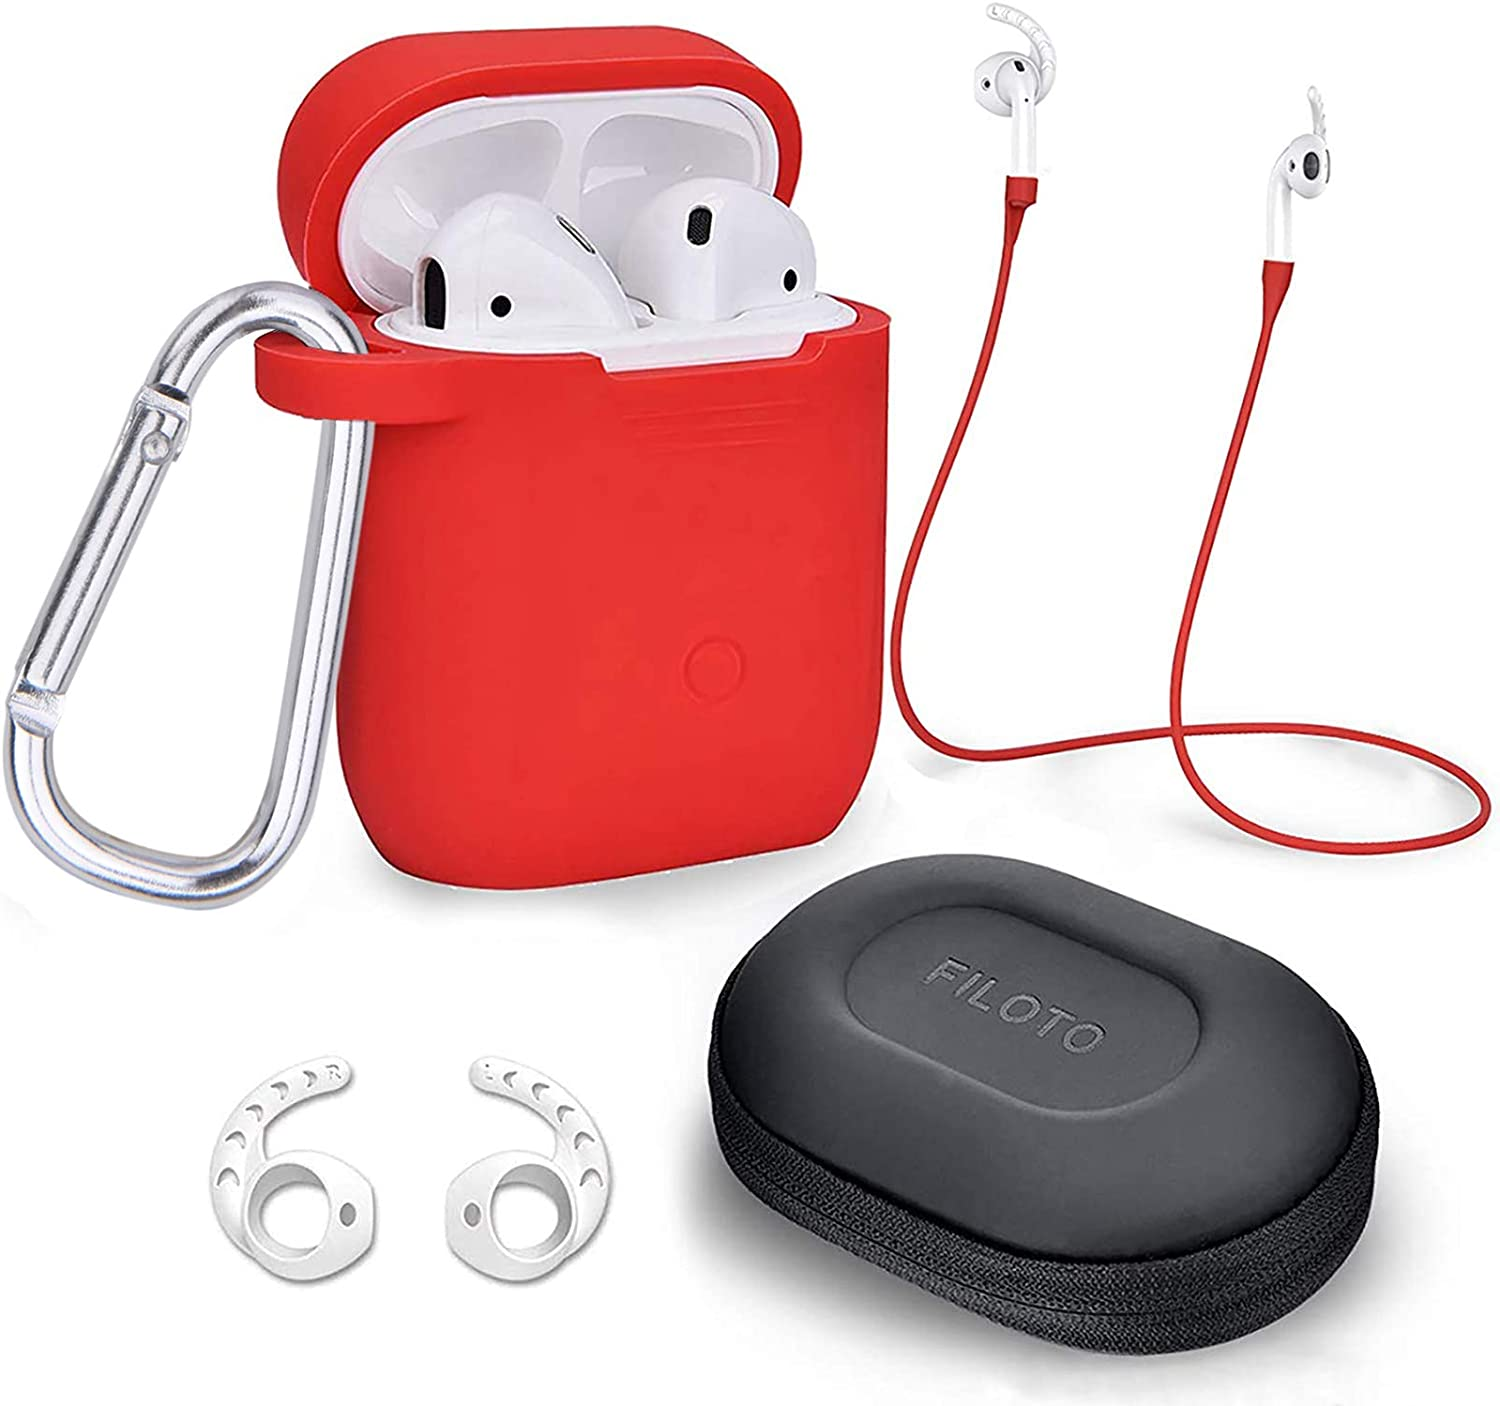 Case for Airpods Accessories Set, Filoto Airpod Silicone Case Cover with Keychain/Strap/Earhooks/Accessories Storage Travel Box for Apple Airpods 2&1, Best Gift for Your Air Pod (Red)